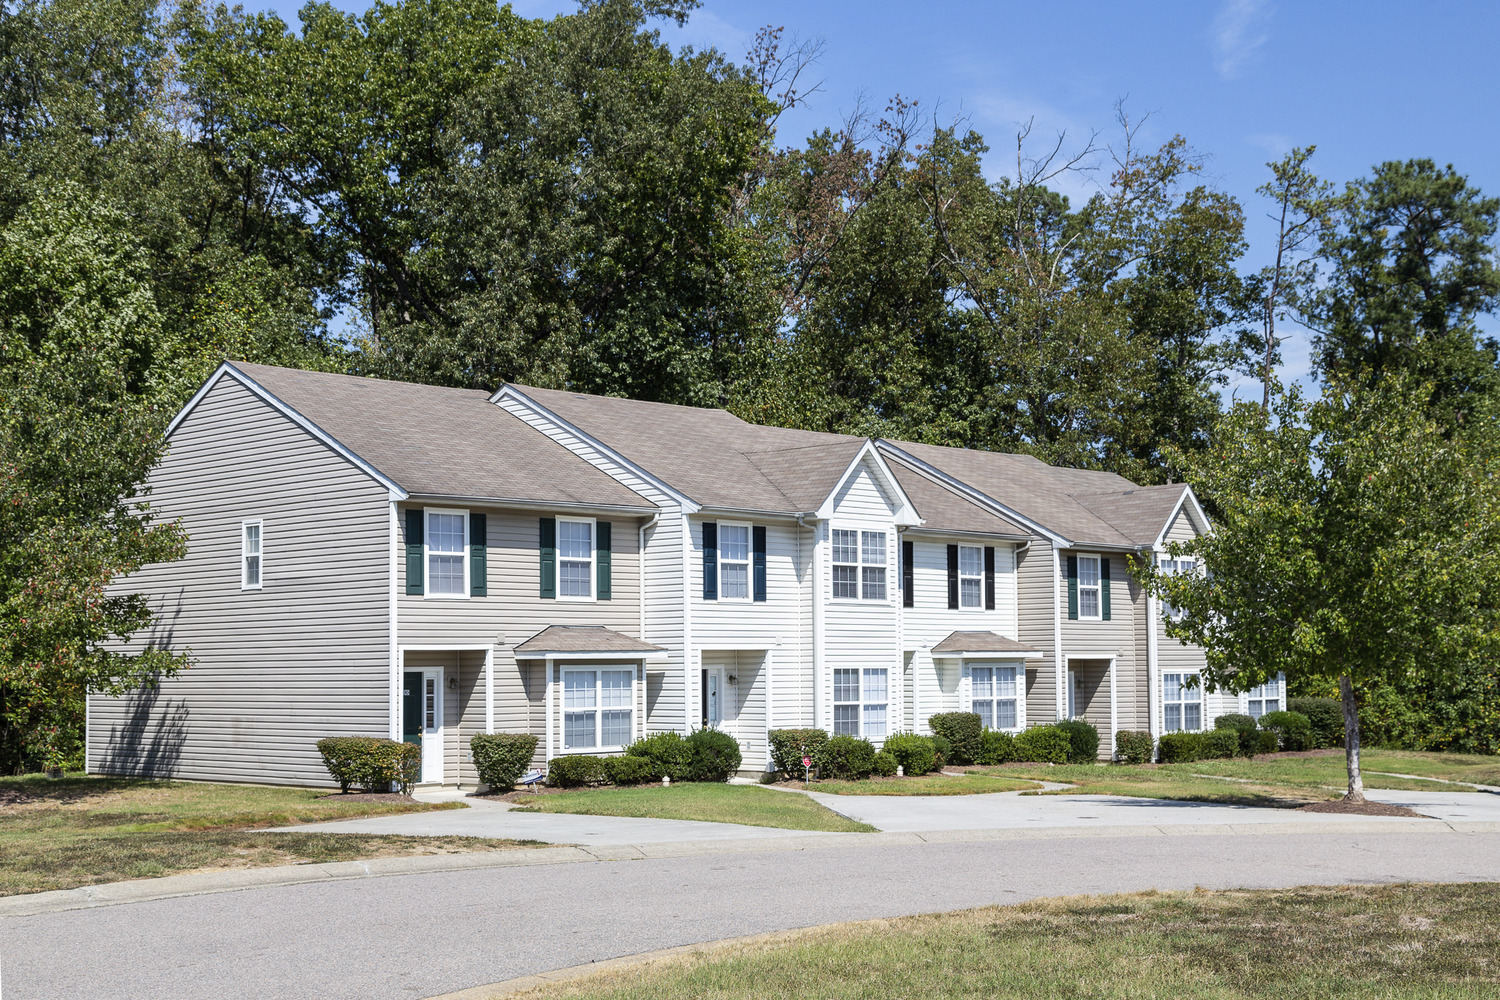 CBG builds Broadwater Townhomes, a 150 Townhome Apartments in Chester, VA - Image #3